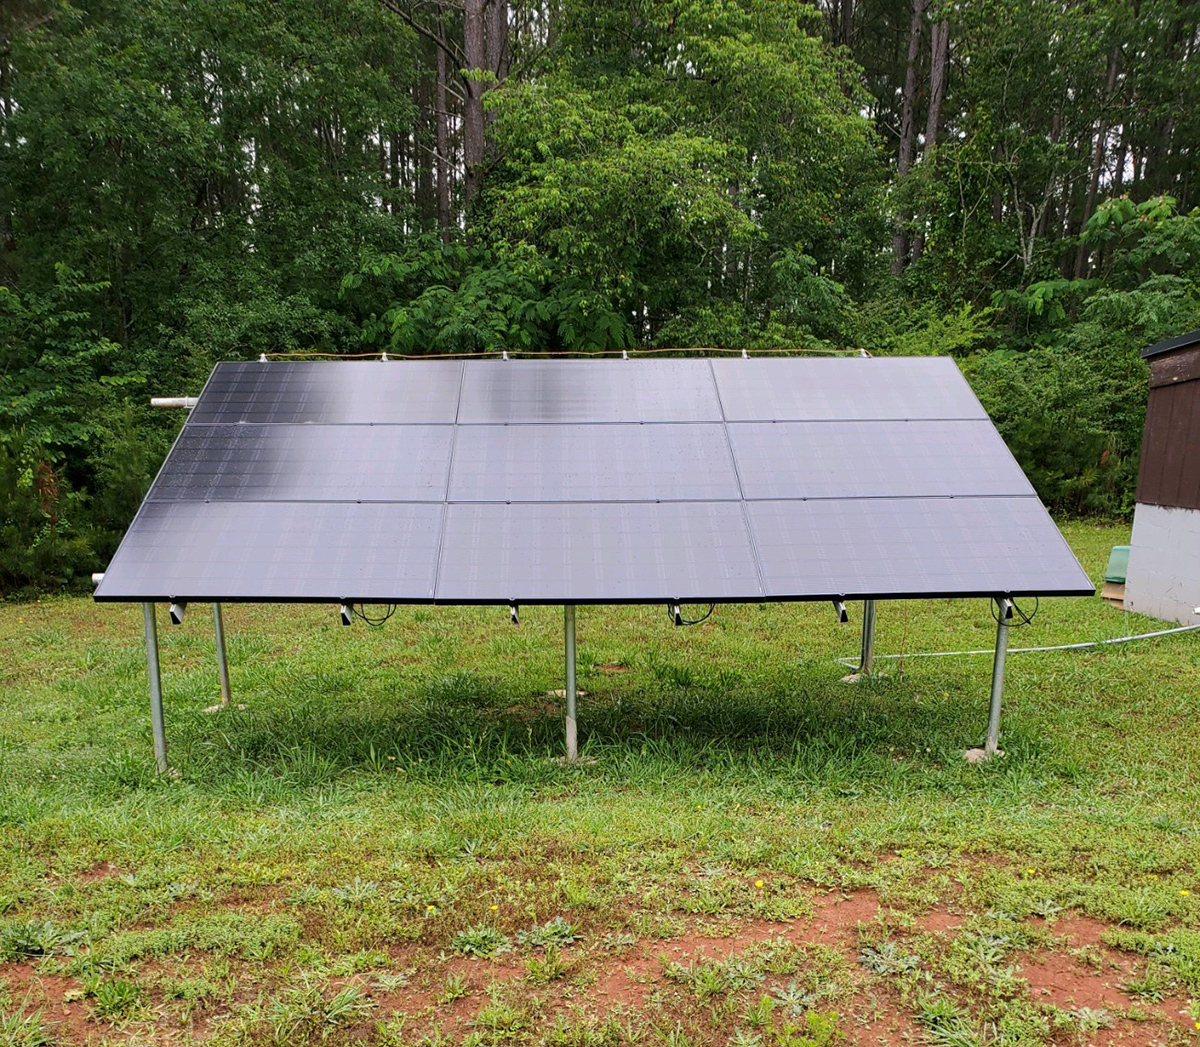 Solar In Action: Dennis in Georgia - 3kW LG and Enphase Ground Mount